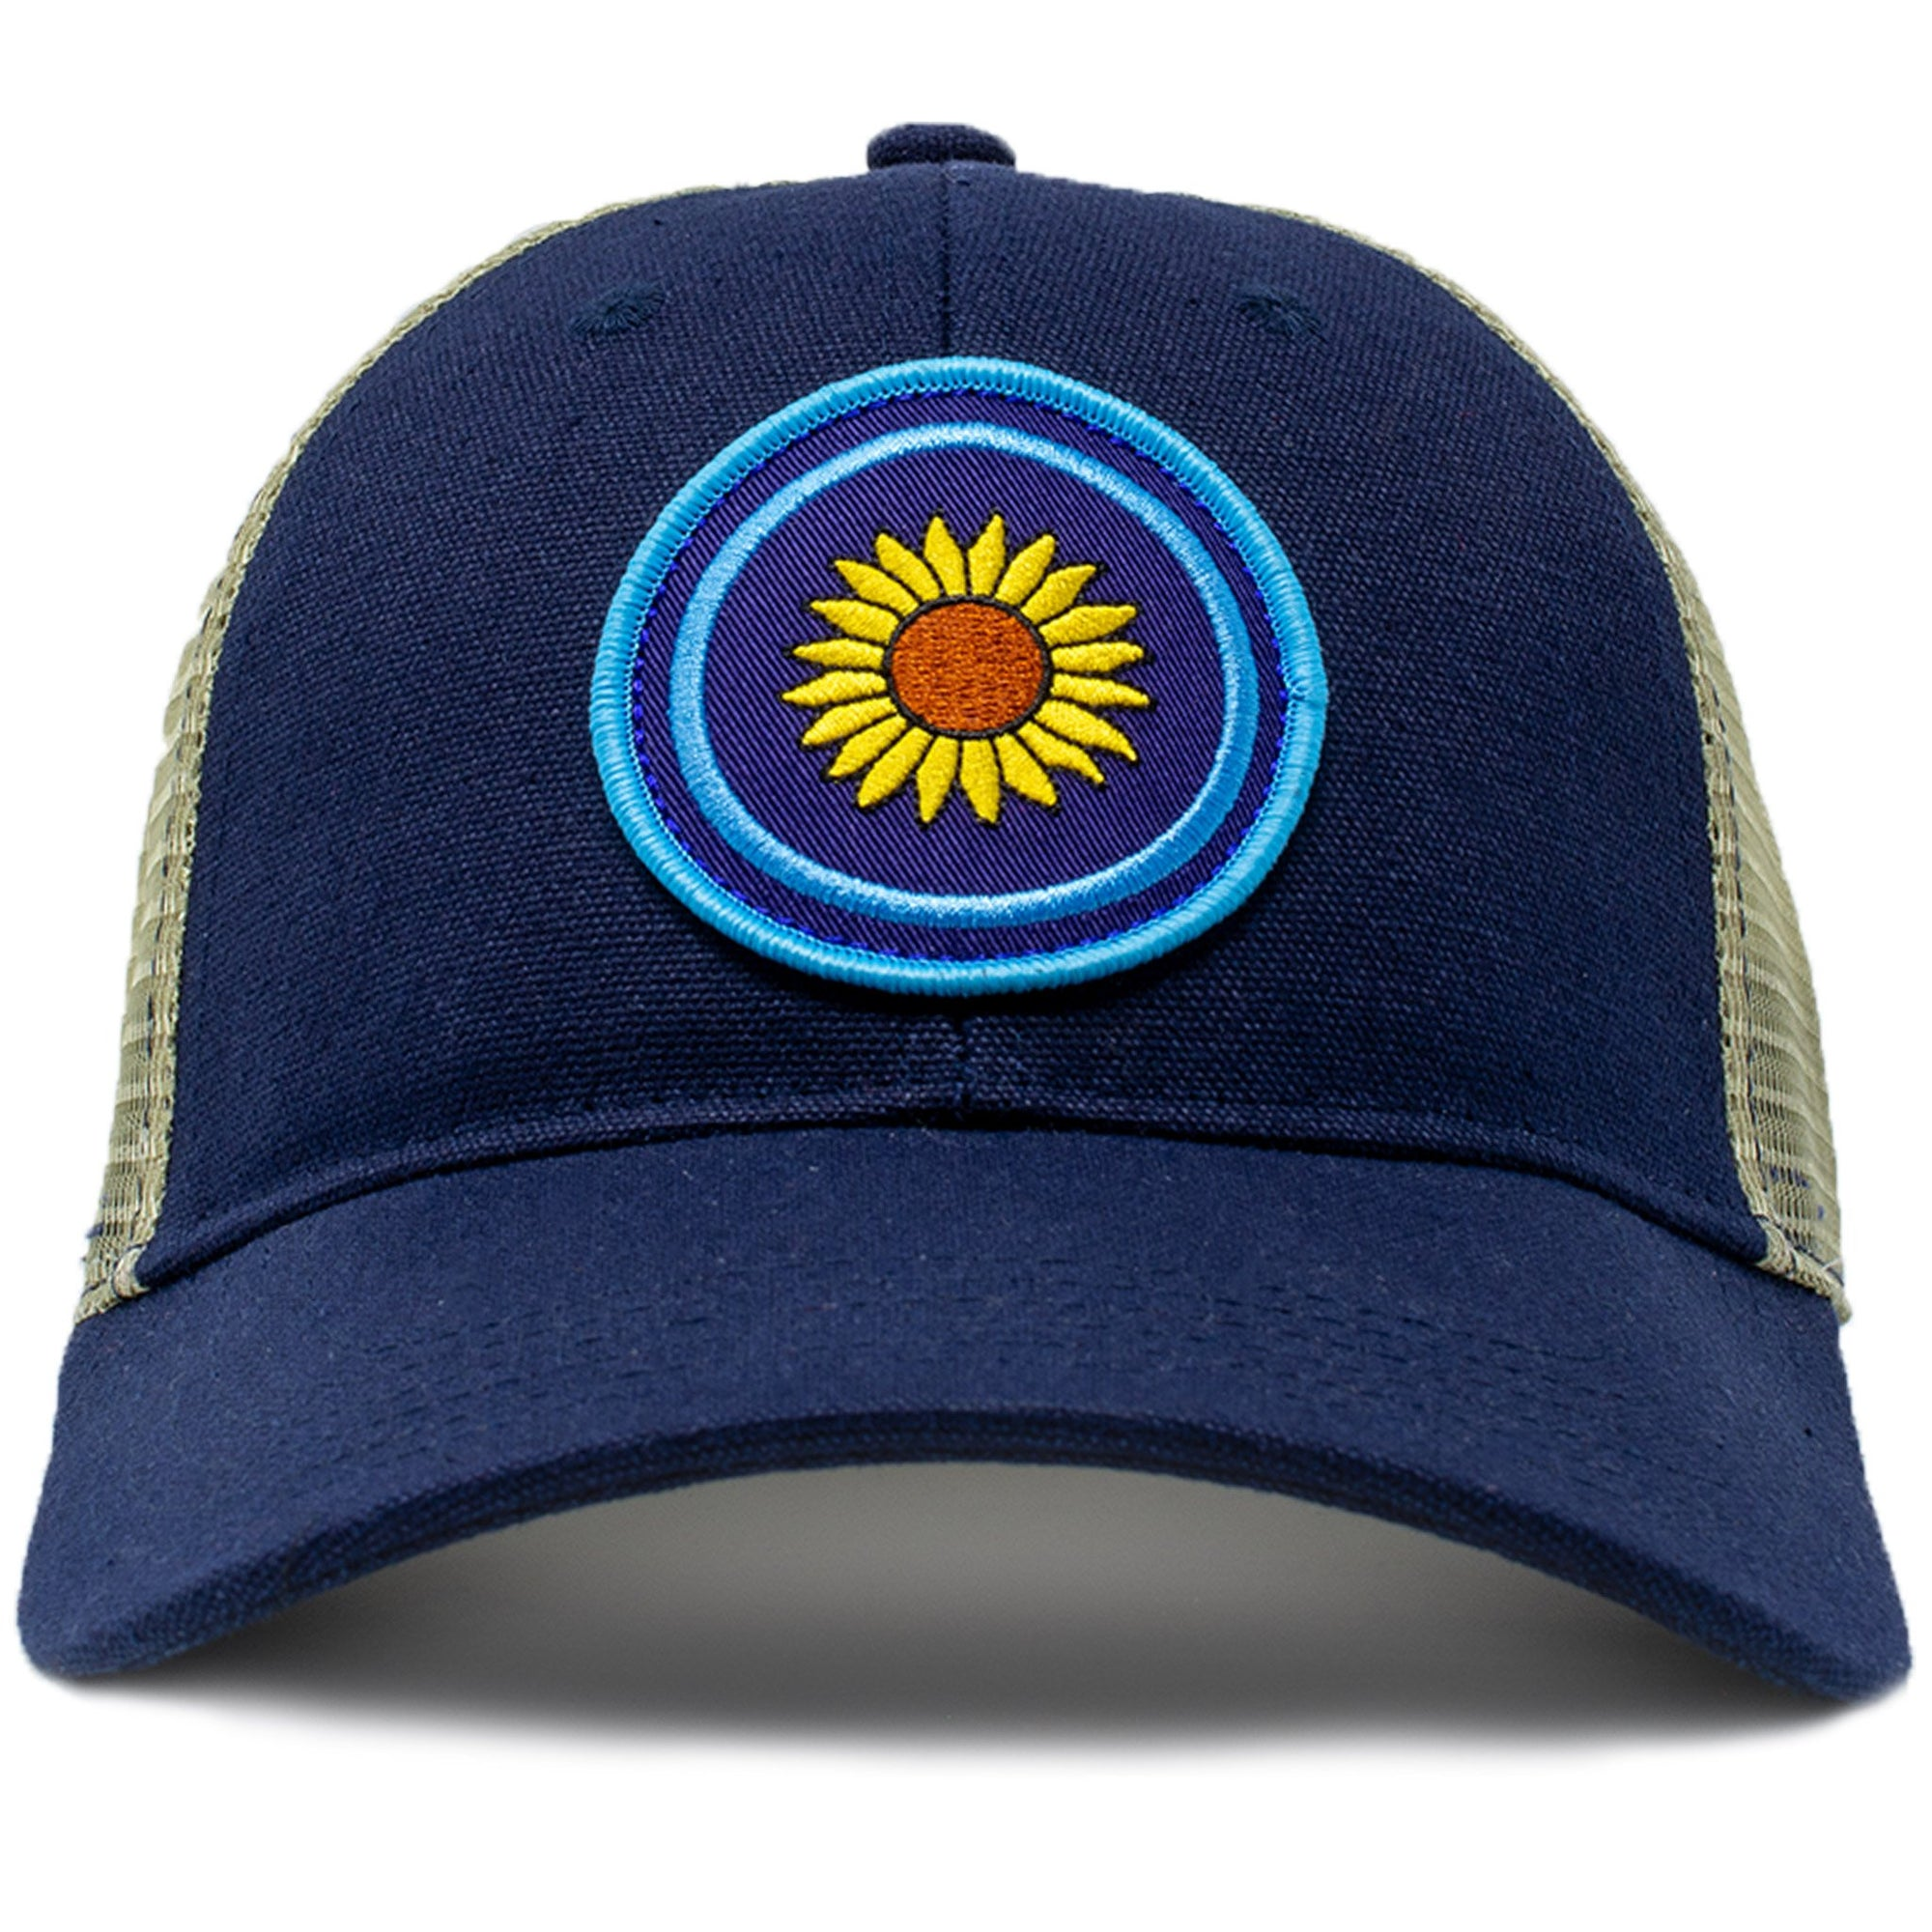 Kansas patch hat